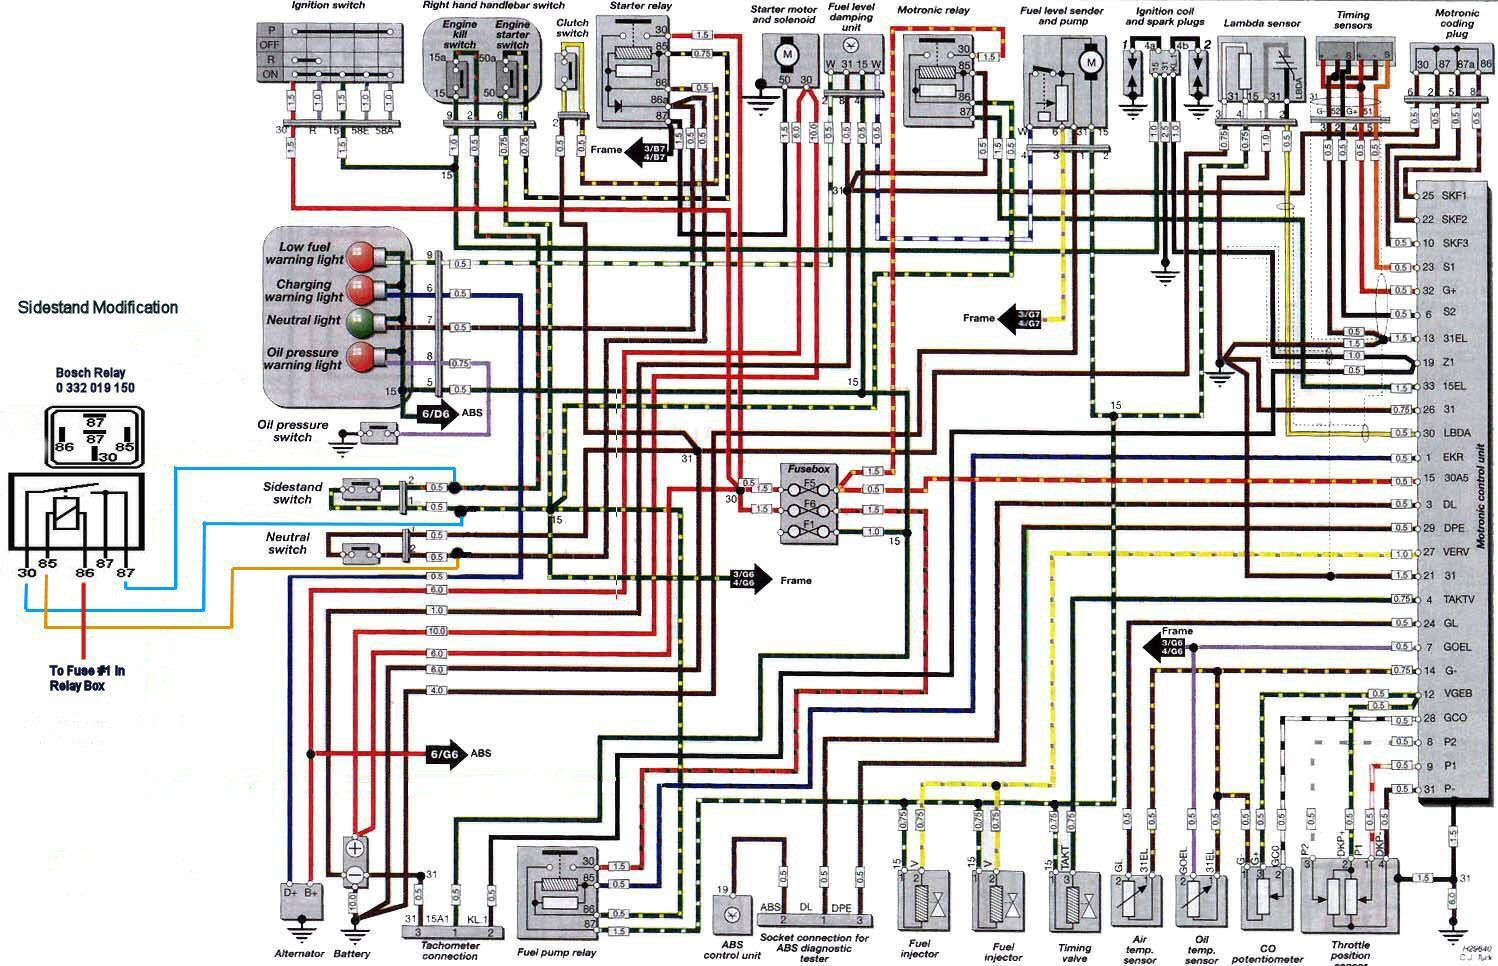 cfa26548fff674929dbaca6a9b06c2b3 bmw r1150r electrical wiring diagram 1 bmv pinterest bmw mini wiring diagrams at edmiracle.co